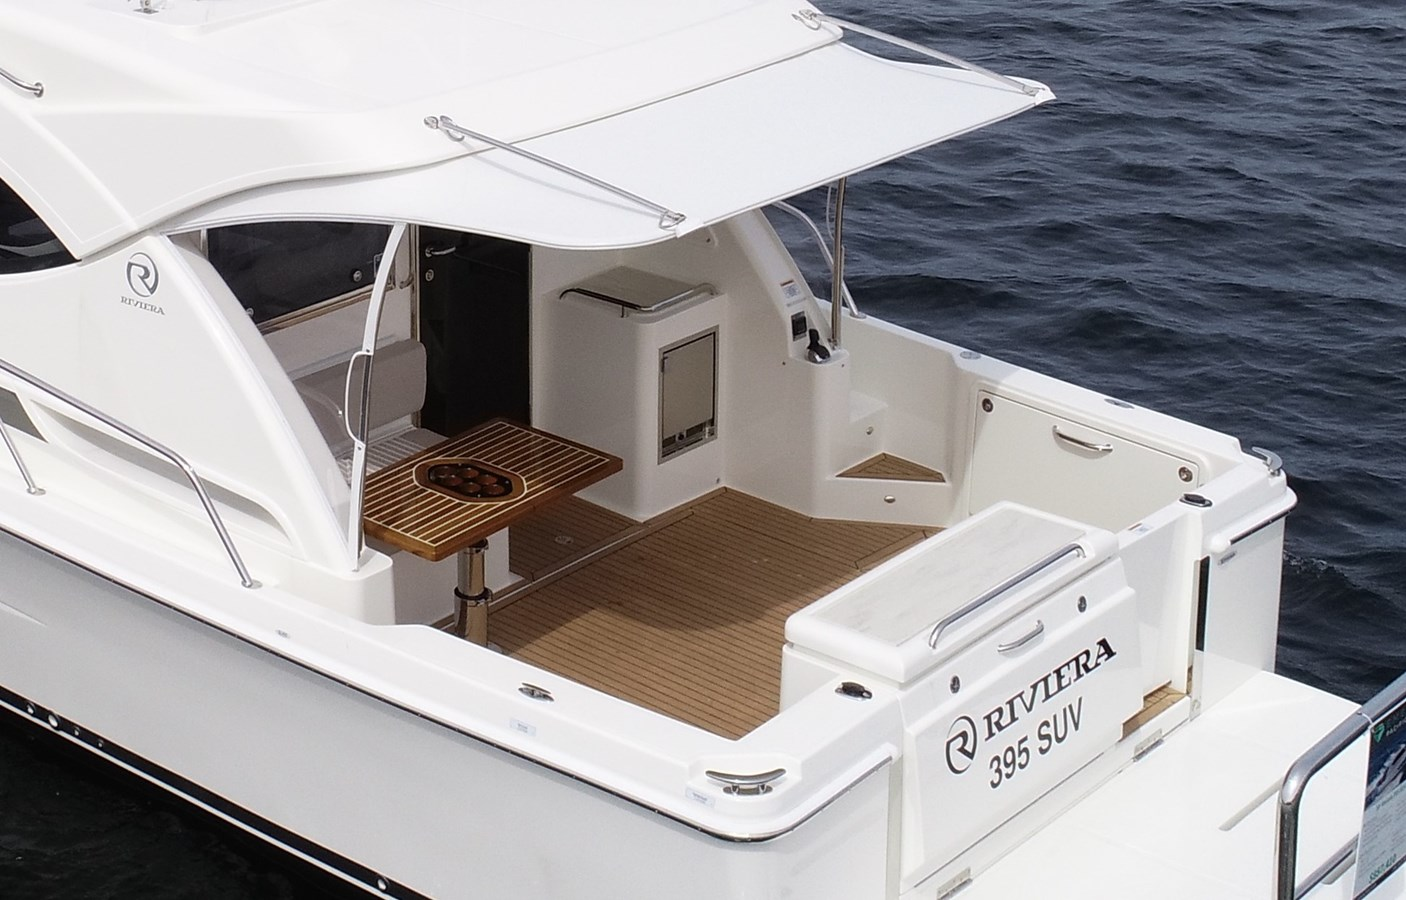 Cassis yacht for sale